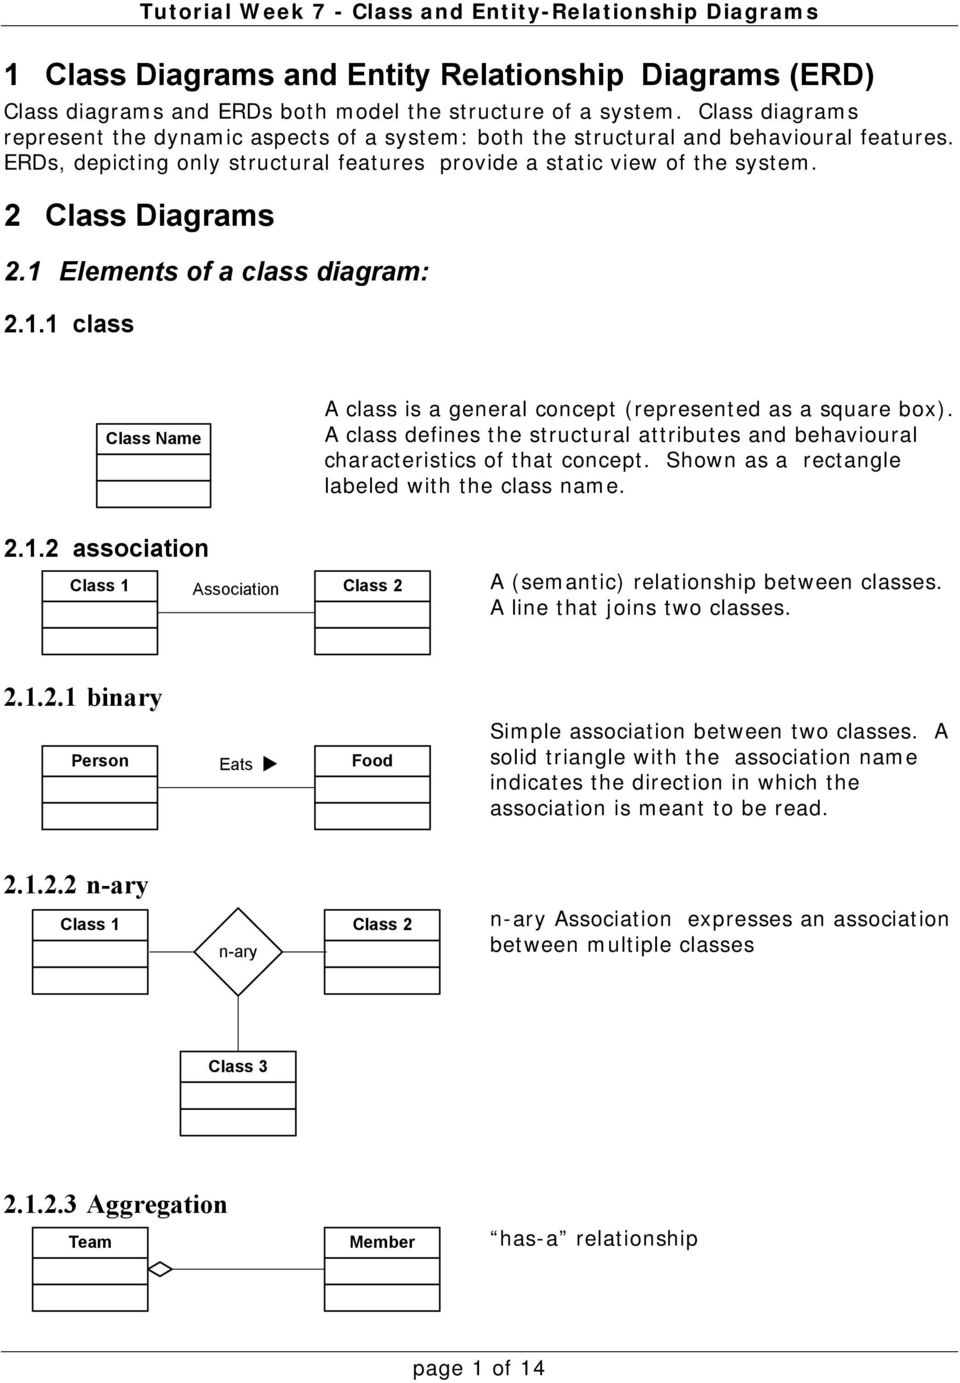 1 Class Diagrams And Entity Relationship Diagrams (Erd) - Pdf with N-Ary Er Diagram